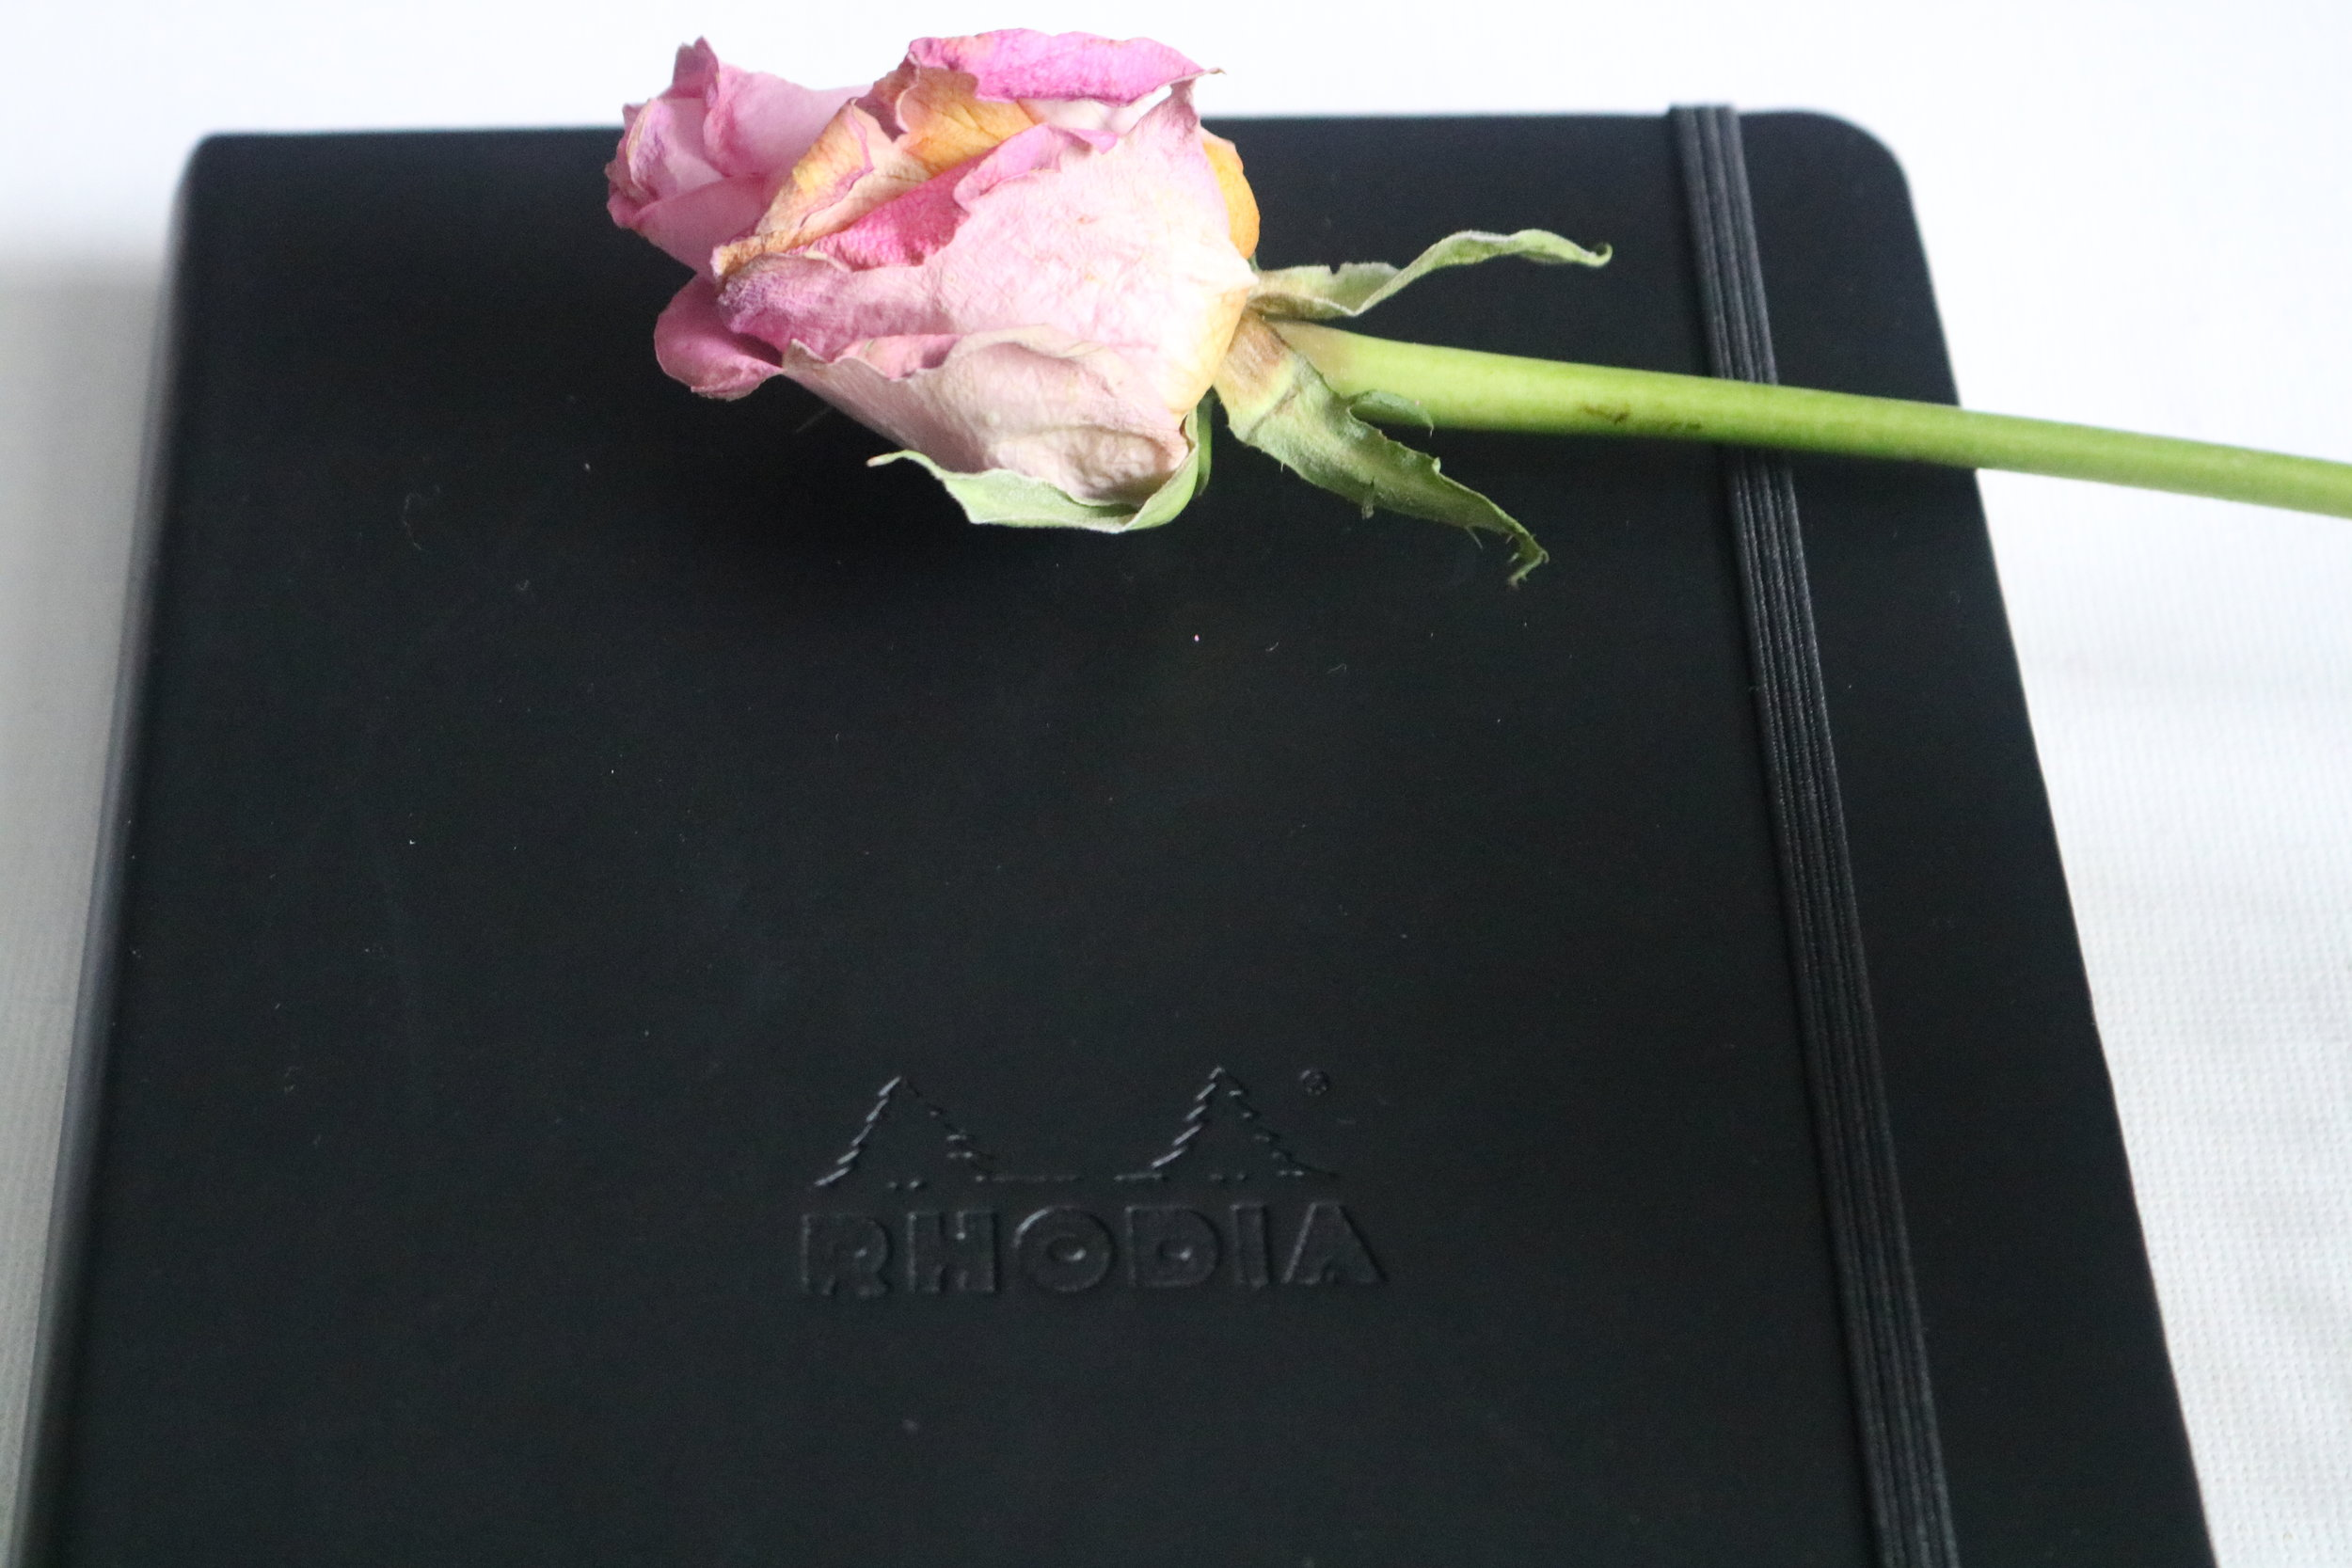 Rhodia Notebook Review